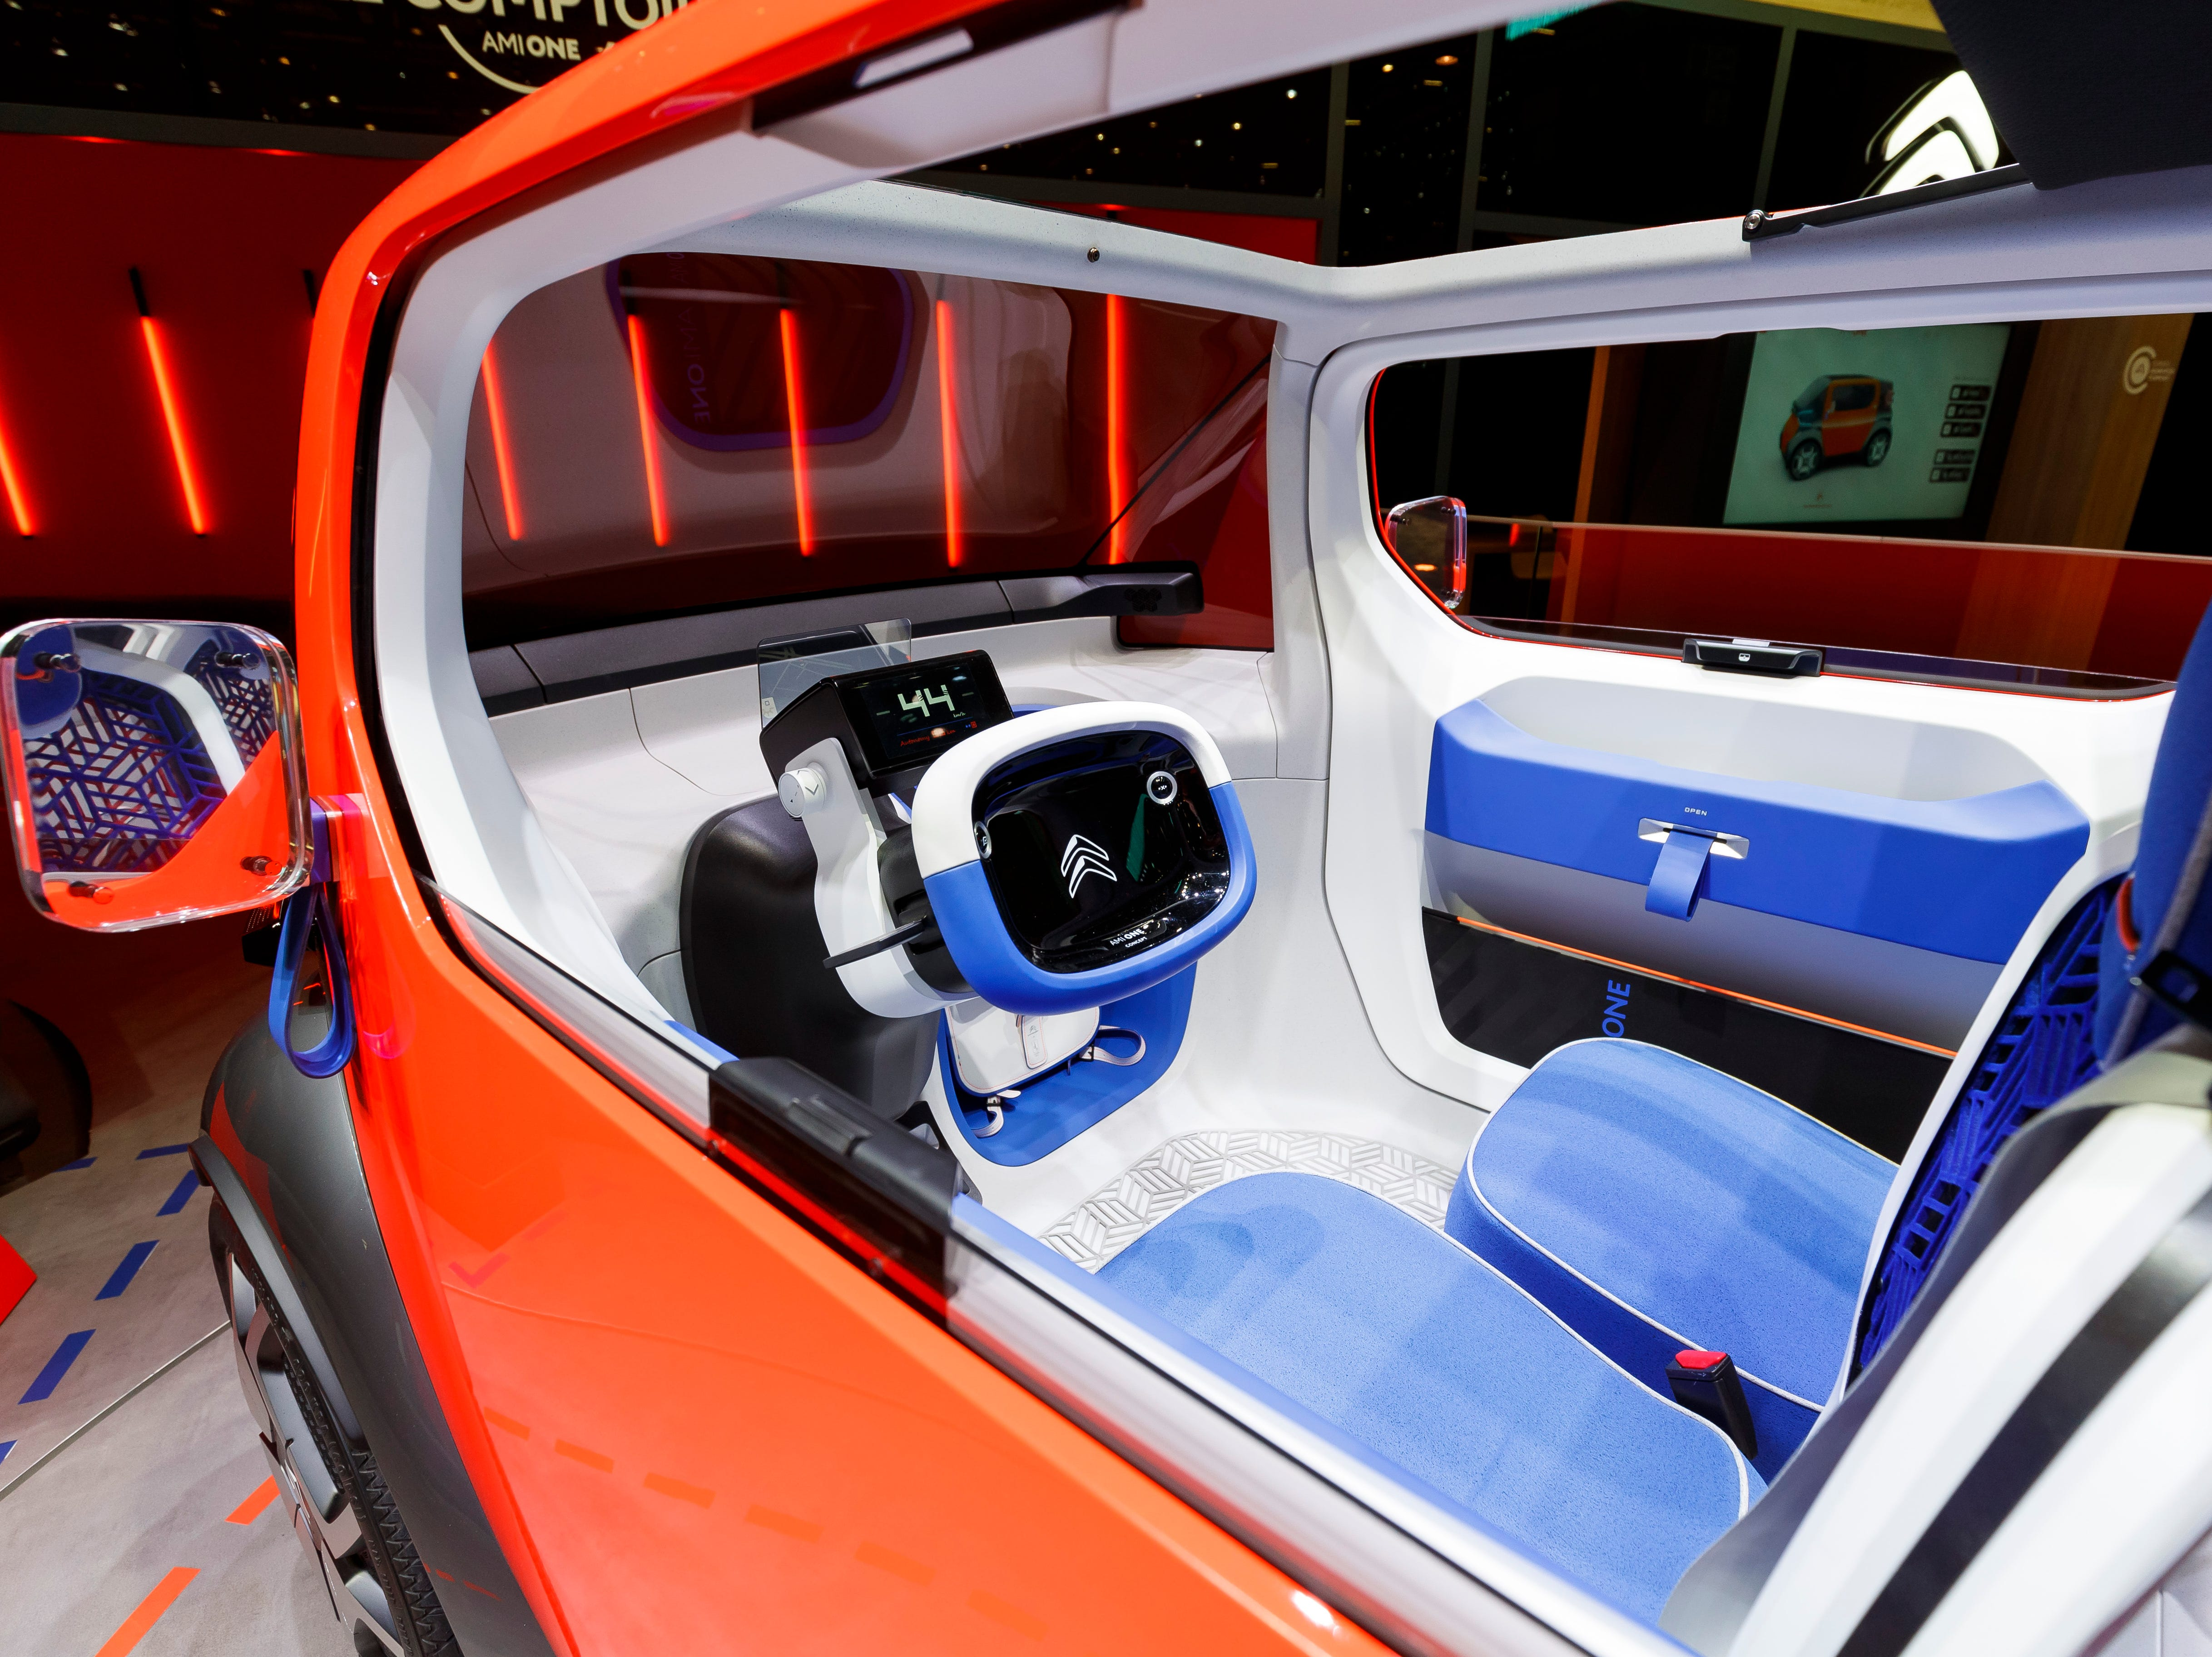 The Citroen Ami One Concept car is shown, one of many electric car concepts.